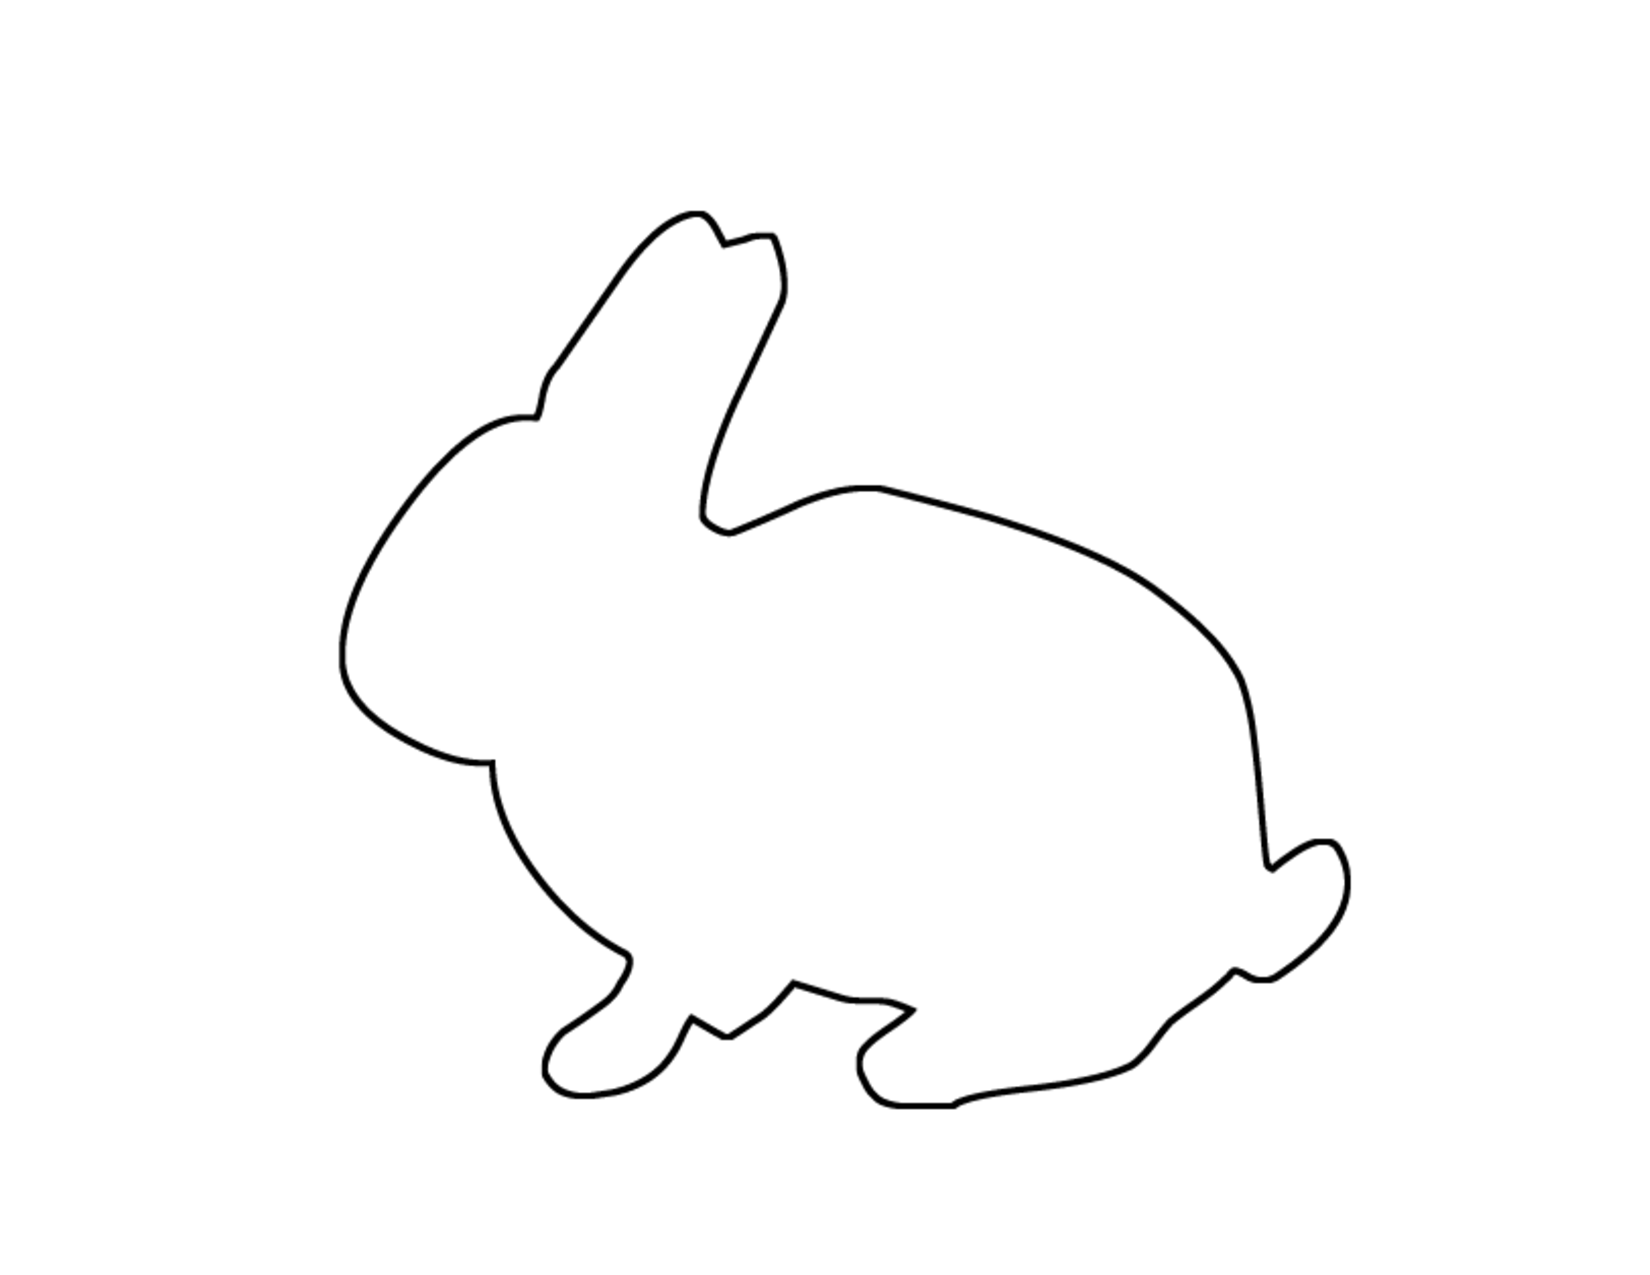 bunny outline Photos of bunny cut out outline printable png.